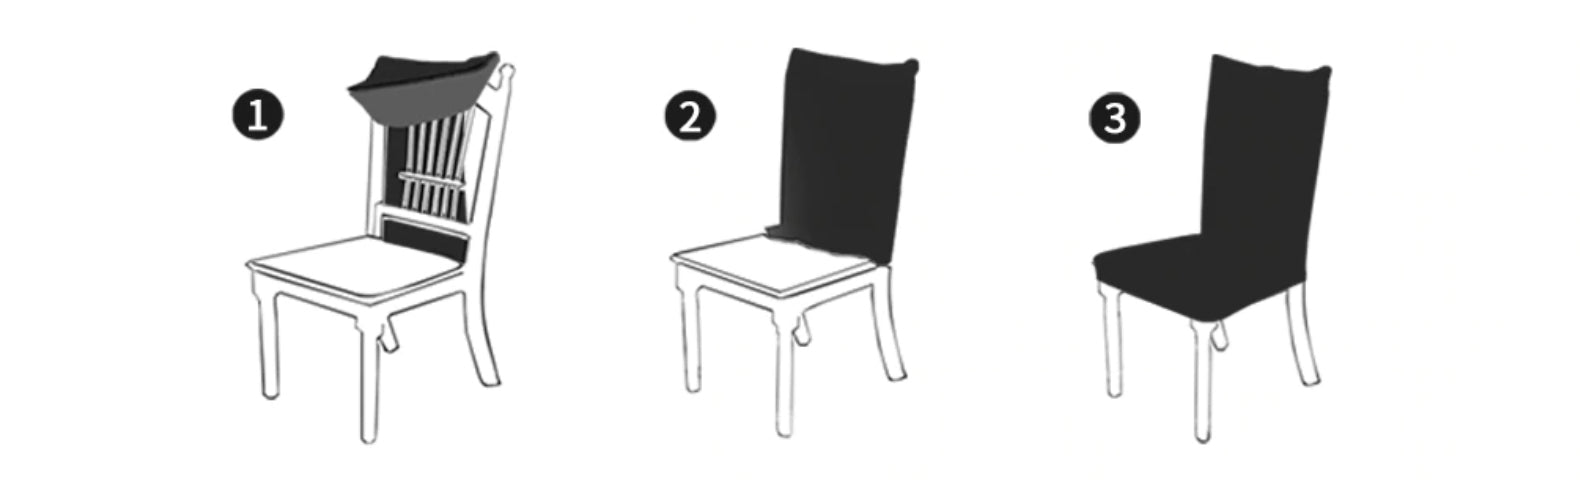 Comment installer ma housse de chaise ? Instructions par etapes pour l'installation